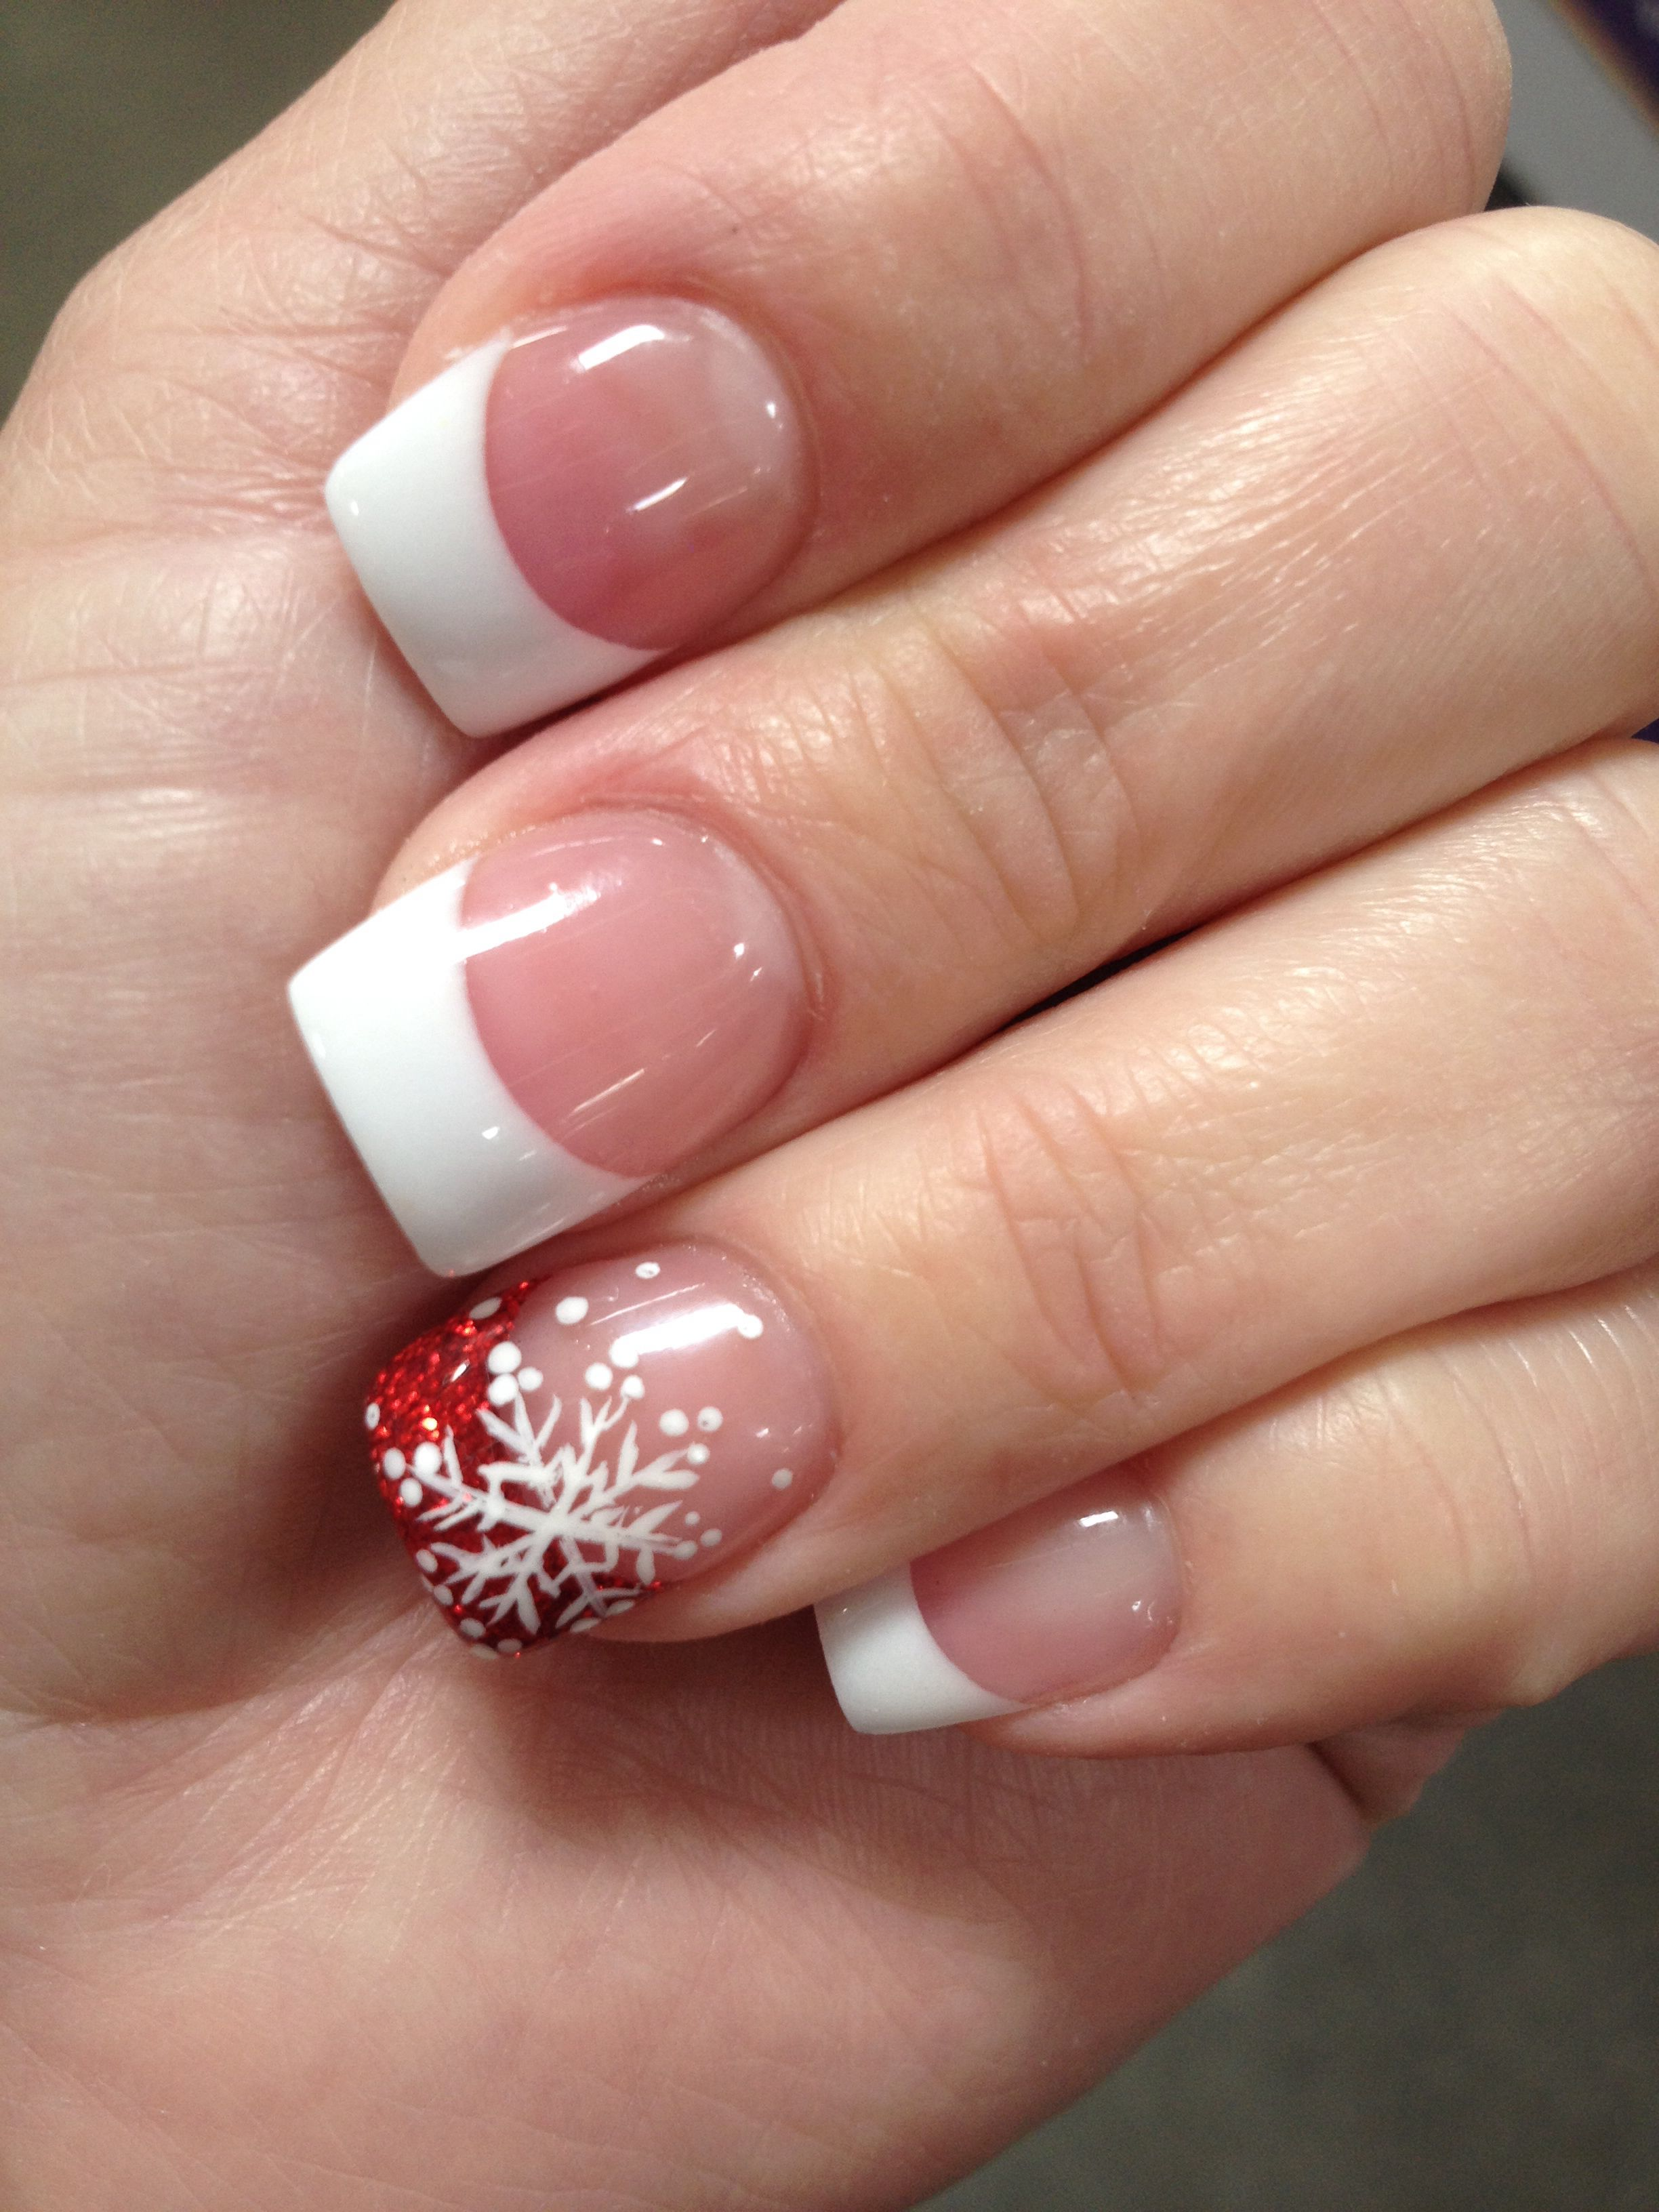 Holiday Nails French Tips With Snowflake On Ring Finger I Love My Nail Tech Christmas Nails Acrylic Nails Xmas Nails